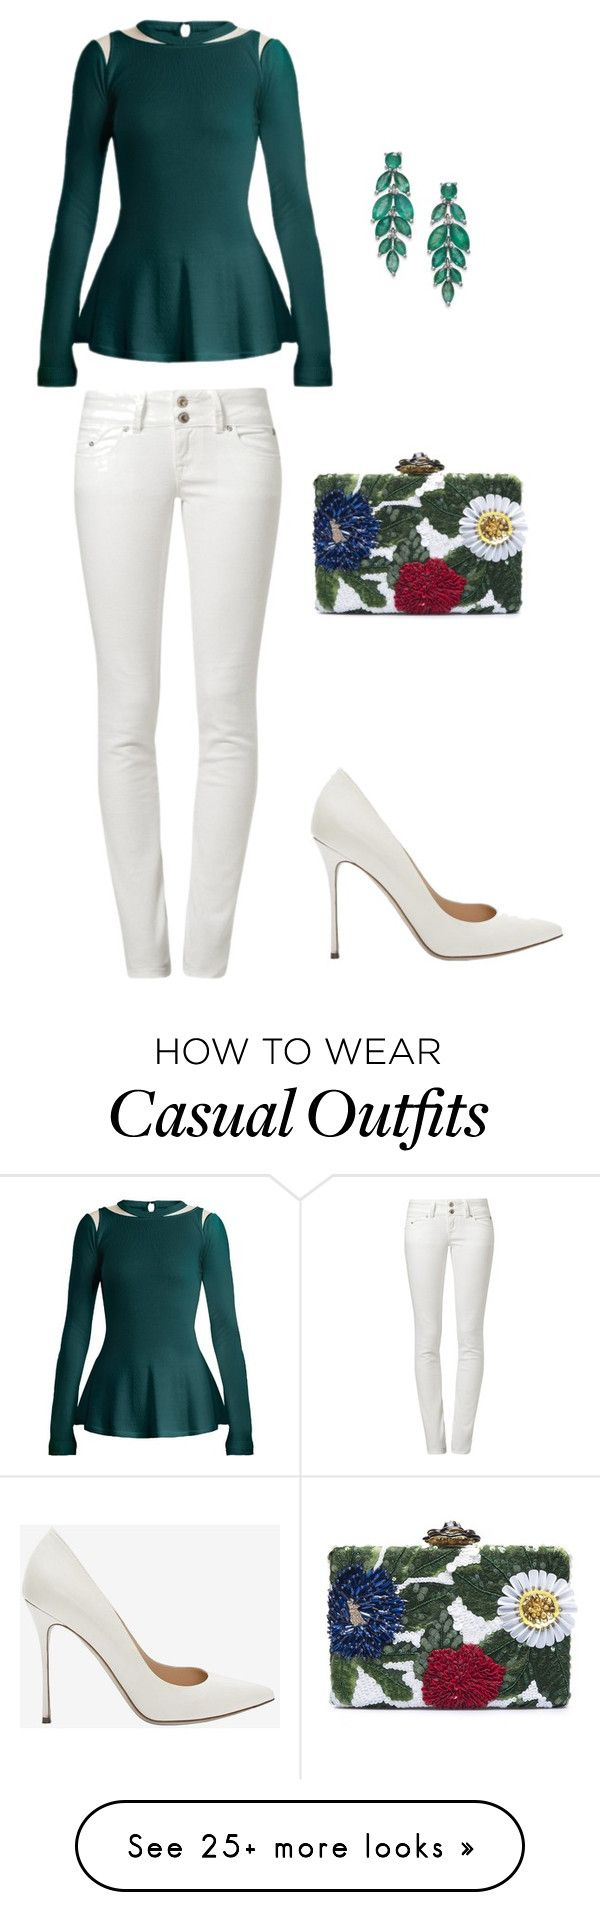 """Office Casual"" by carlafashion-246 on Polyvore featuring Oscar de la Renta, Sergio Rossi and LTB"